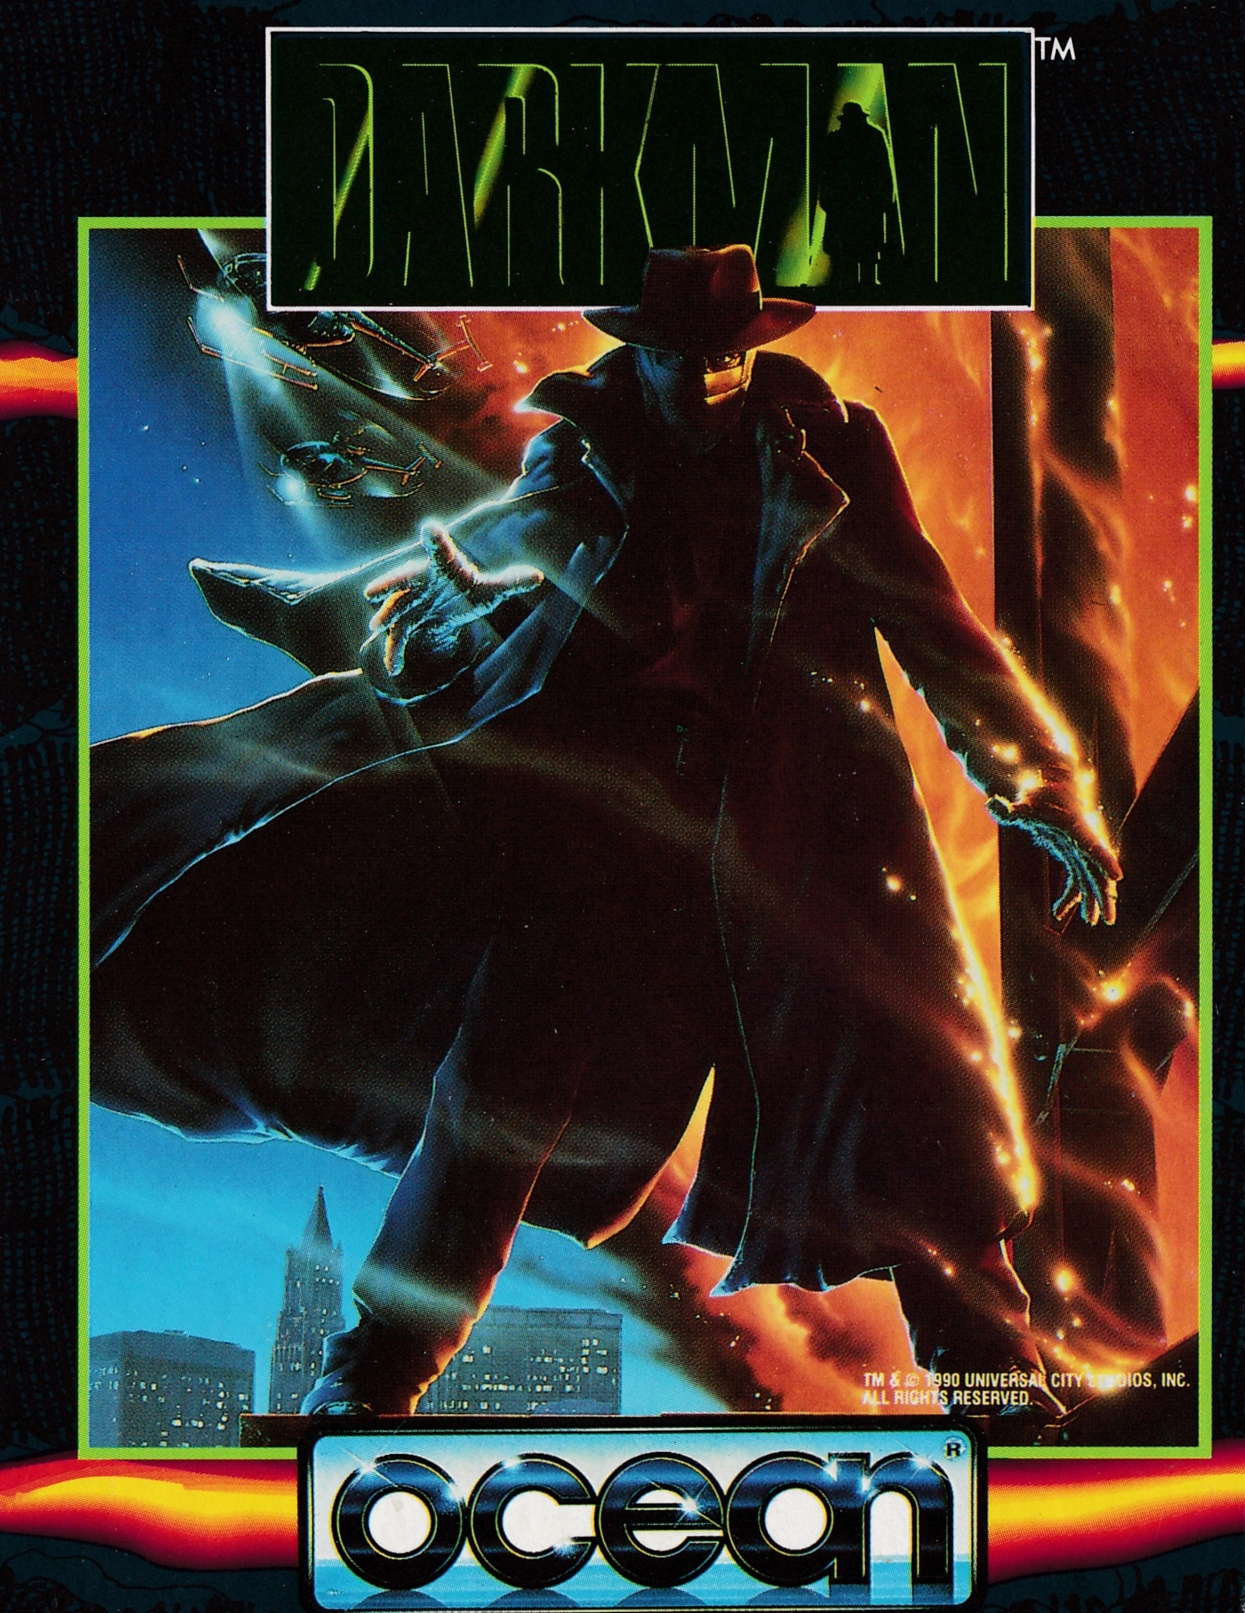 cover of the Amstrad CPC game Darkman  by GameBase CPC